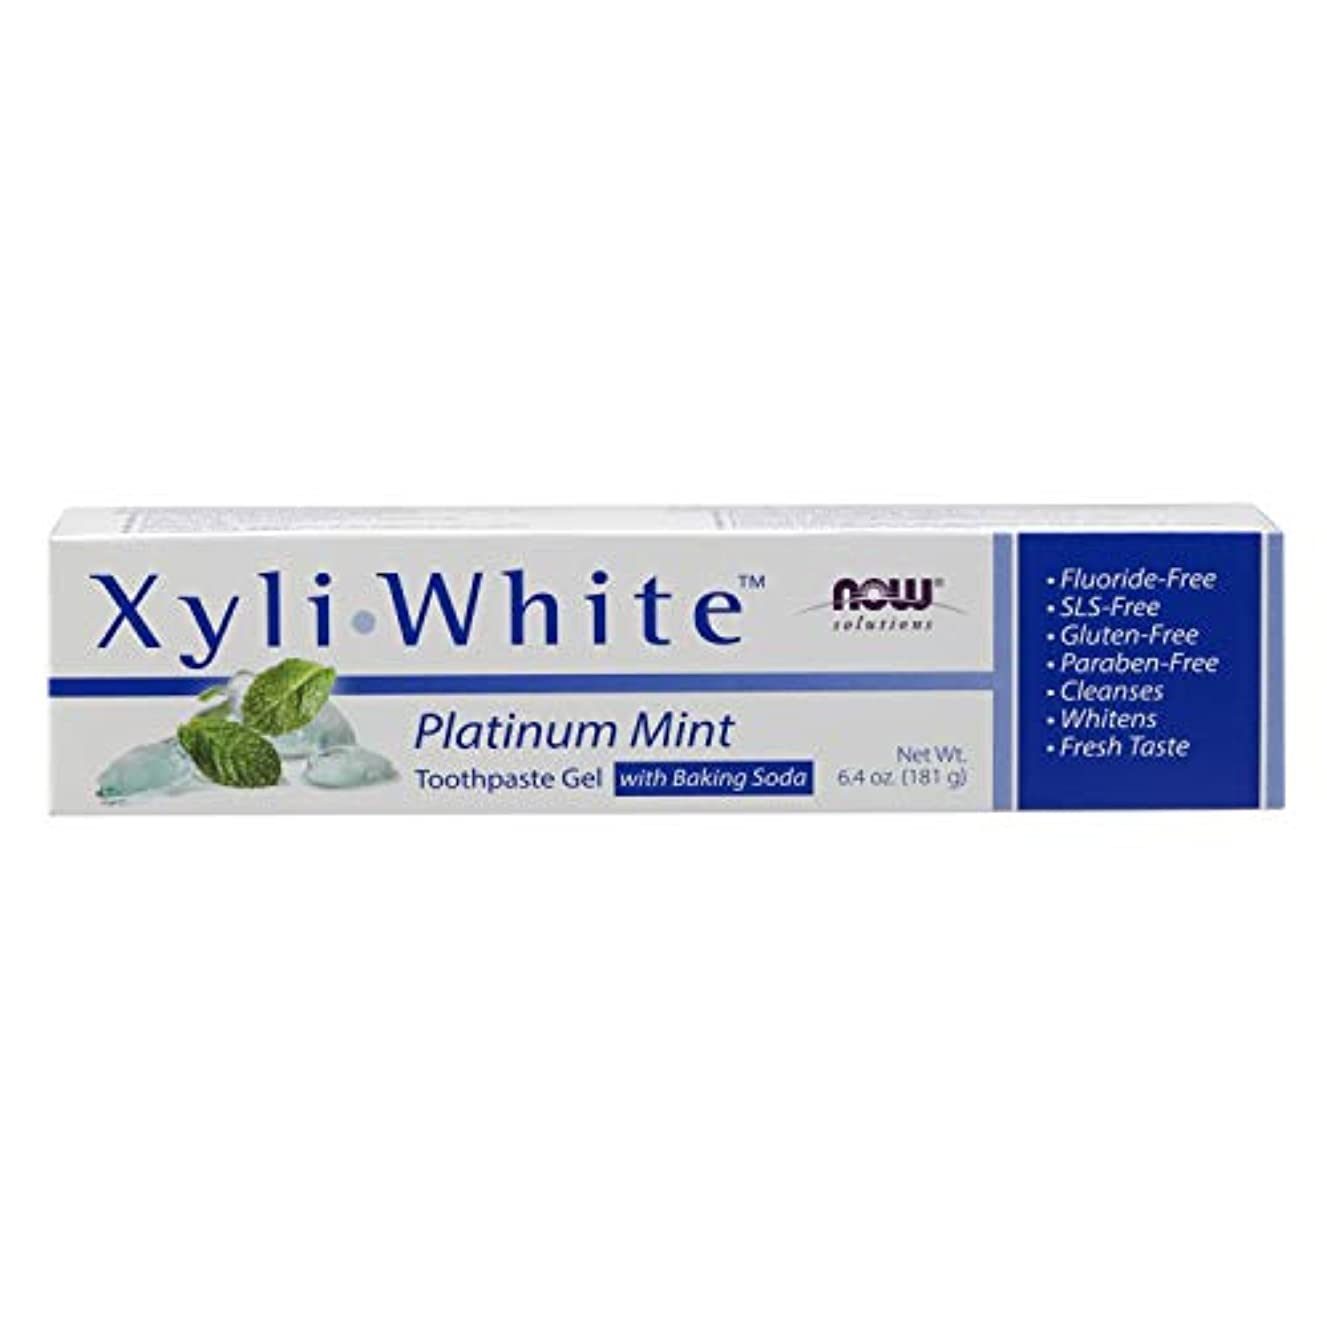 スポンサー呪われたご近所海外直送品 Now Foods Xyliwhite Platinum Mint with Baking Soda Toothpaste, 6.4 Oz